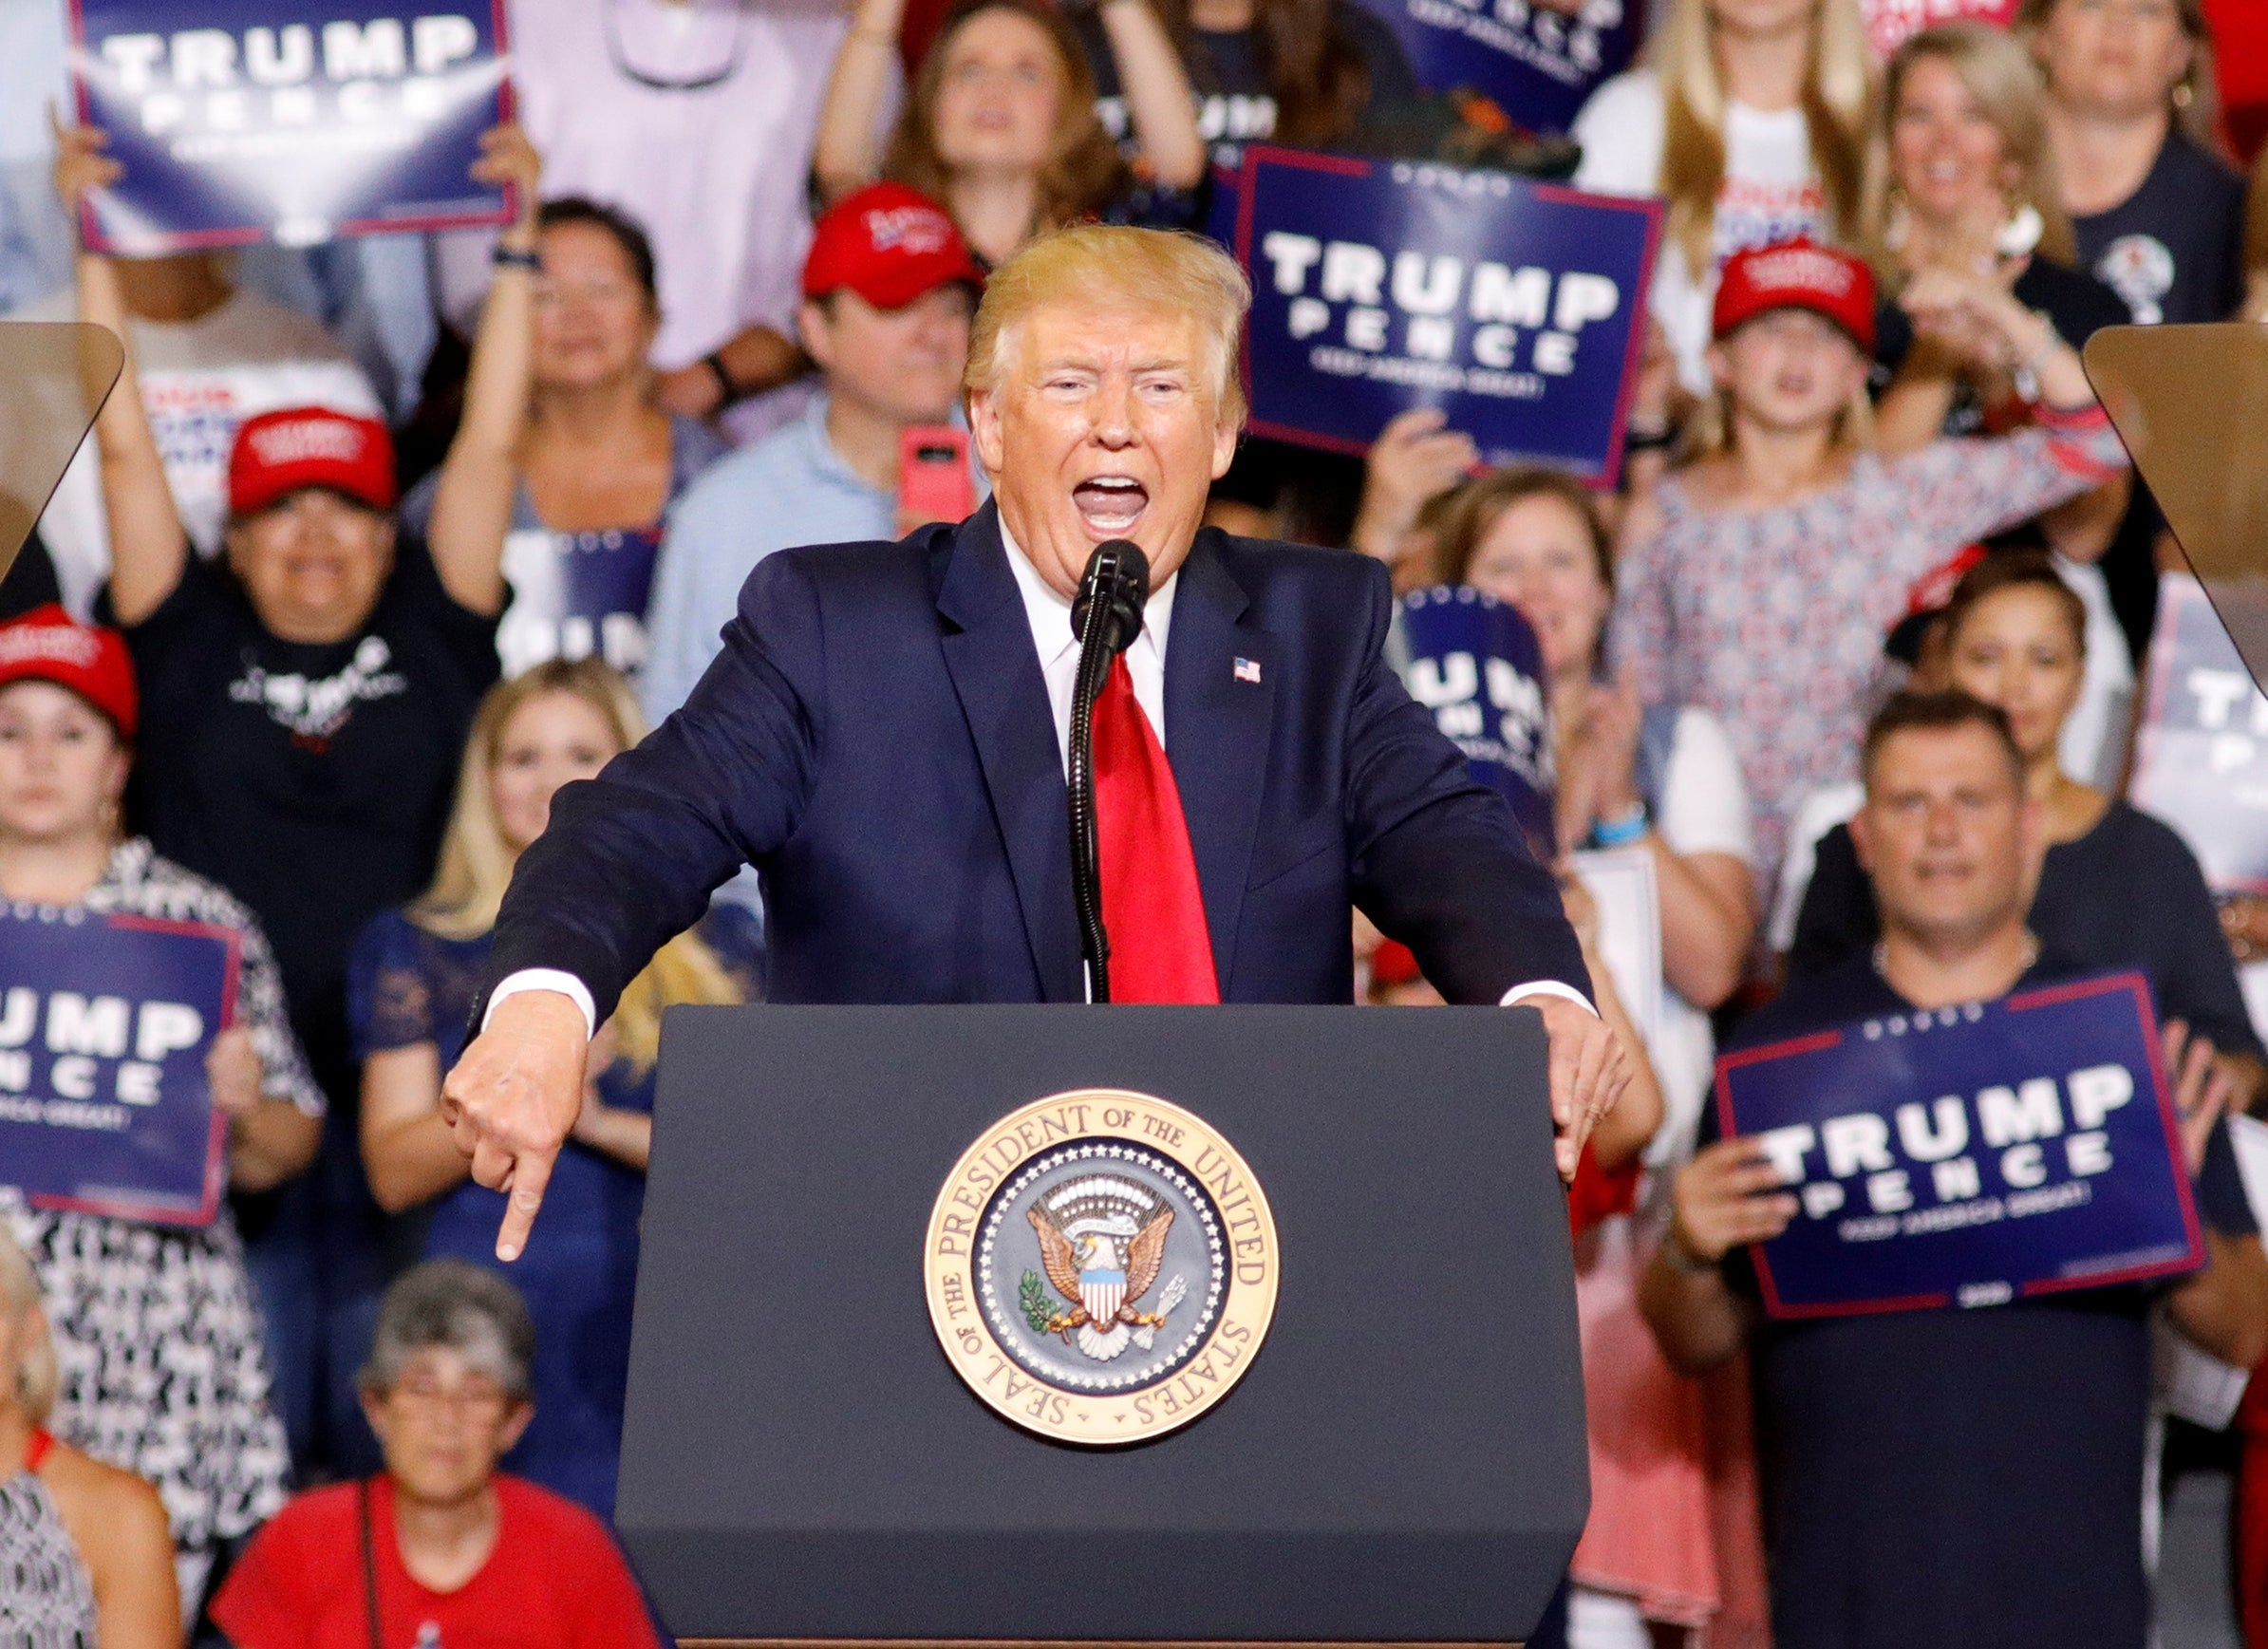 Trump eggs on rally supporters chanting 'send her back' as he steps up racist attack on congresswomen